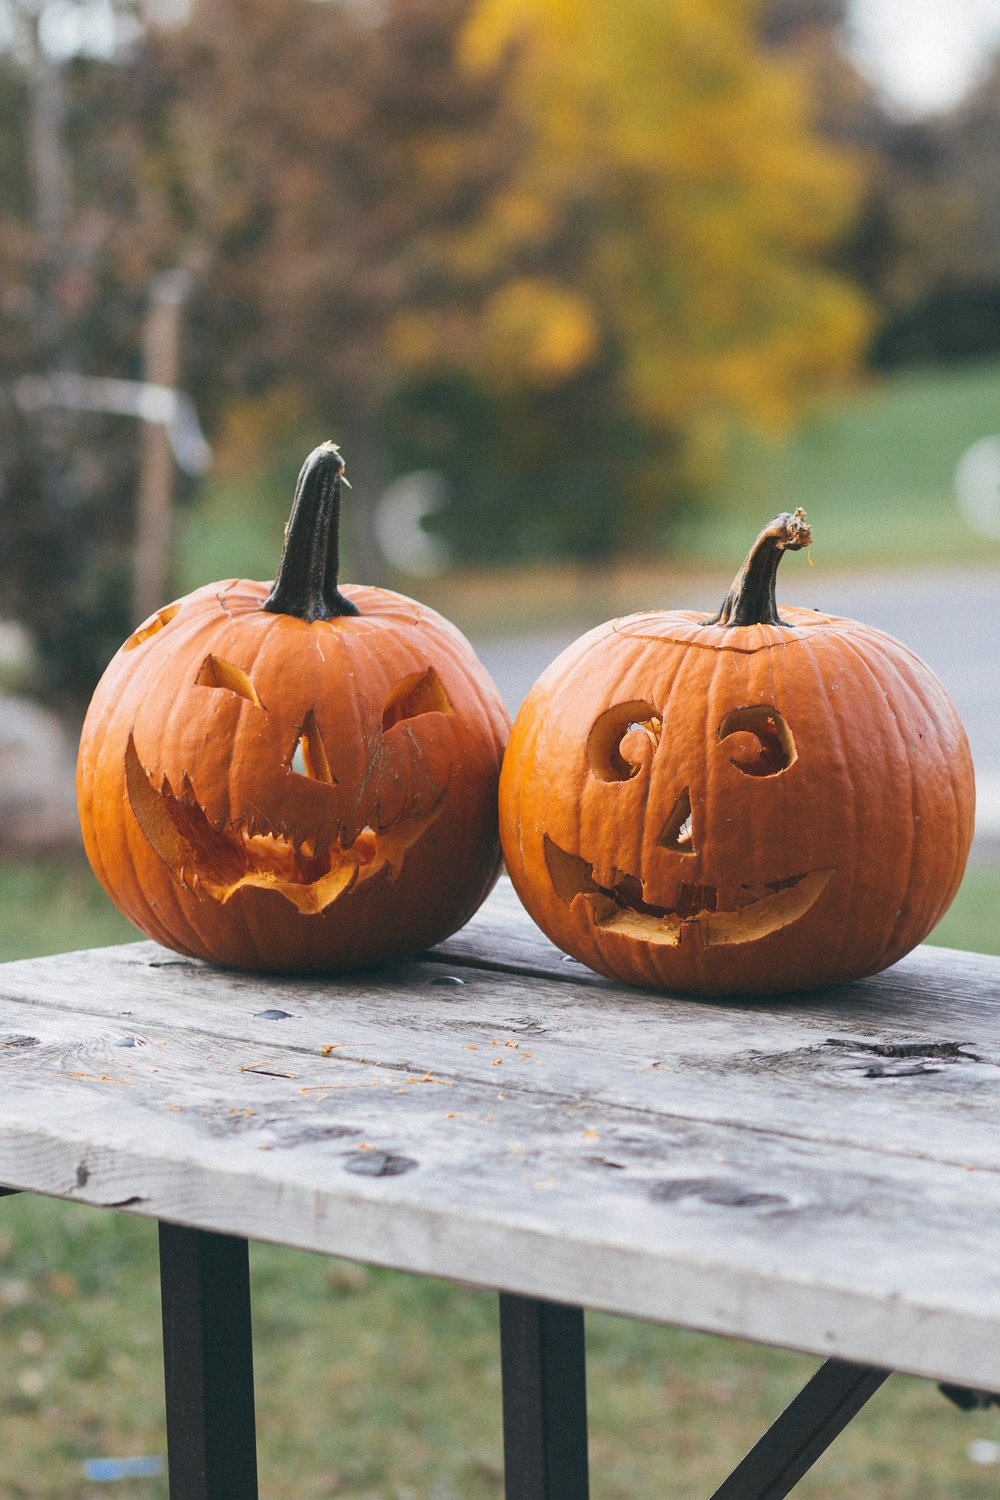 Here's the HOW TO… - If you wish get right down to basics - concrete strategies to make the best of Halloween despite food allergies, then HERE YOU HAVE IT!